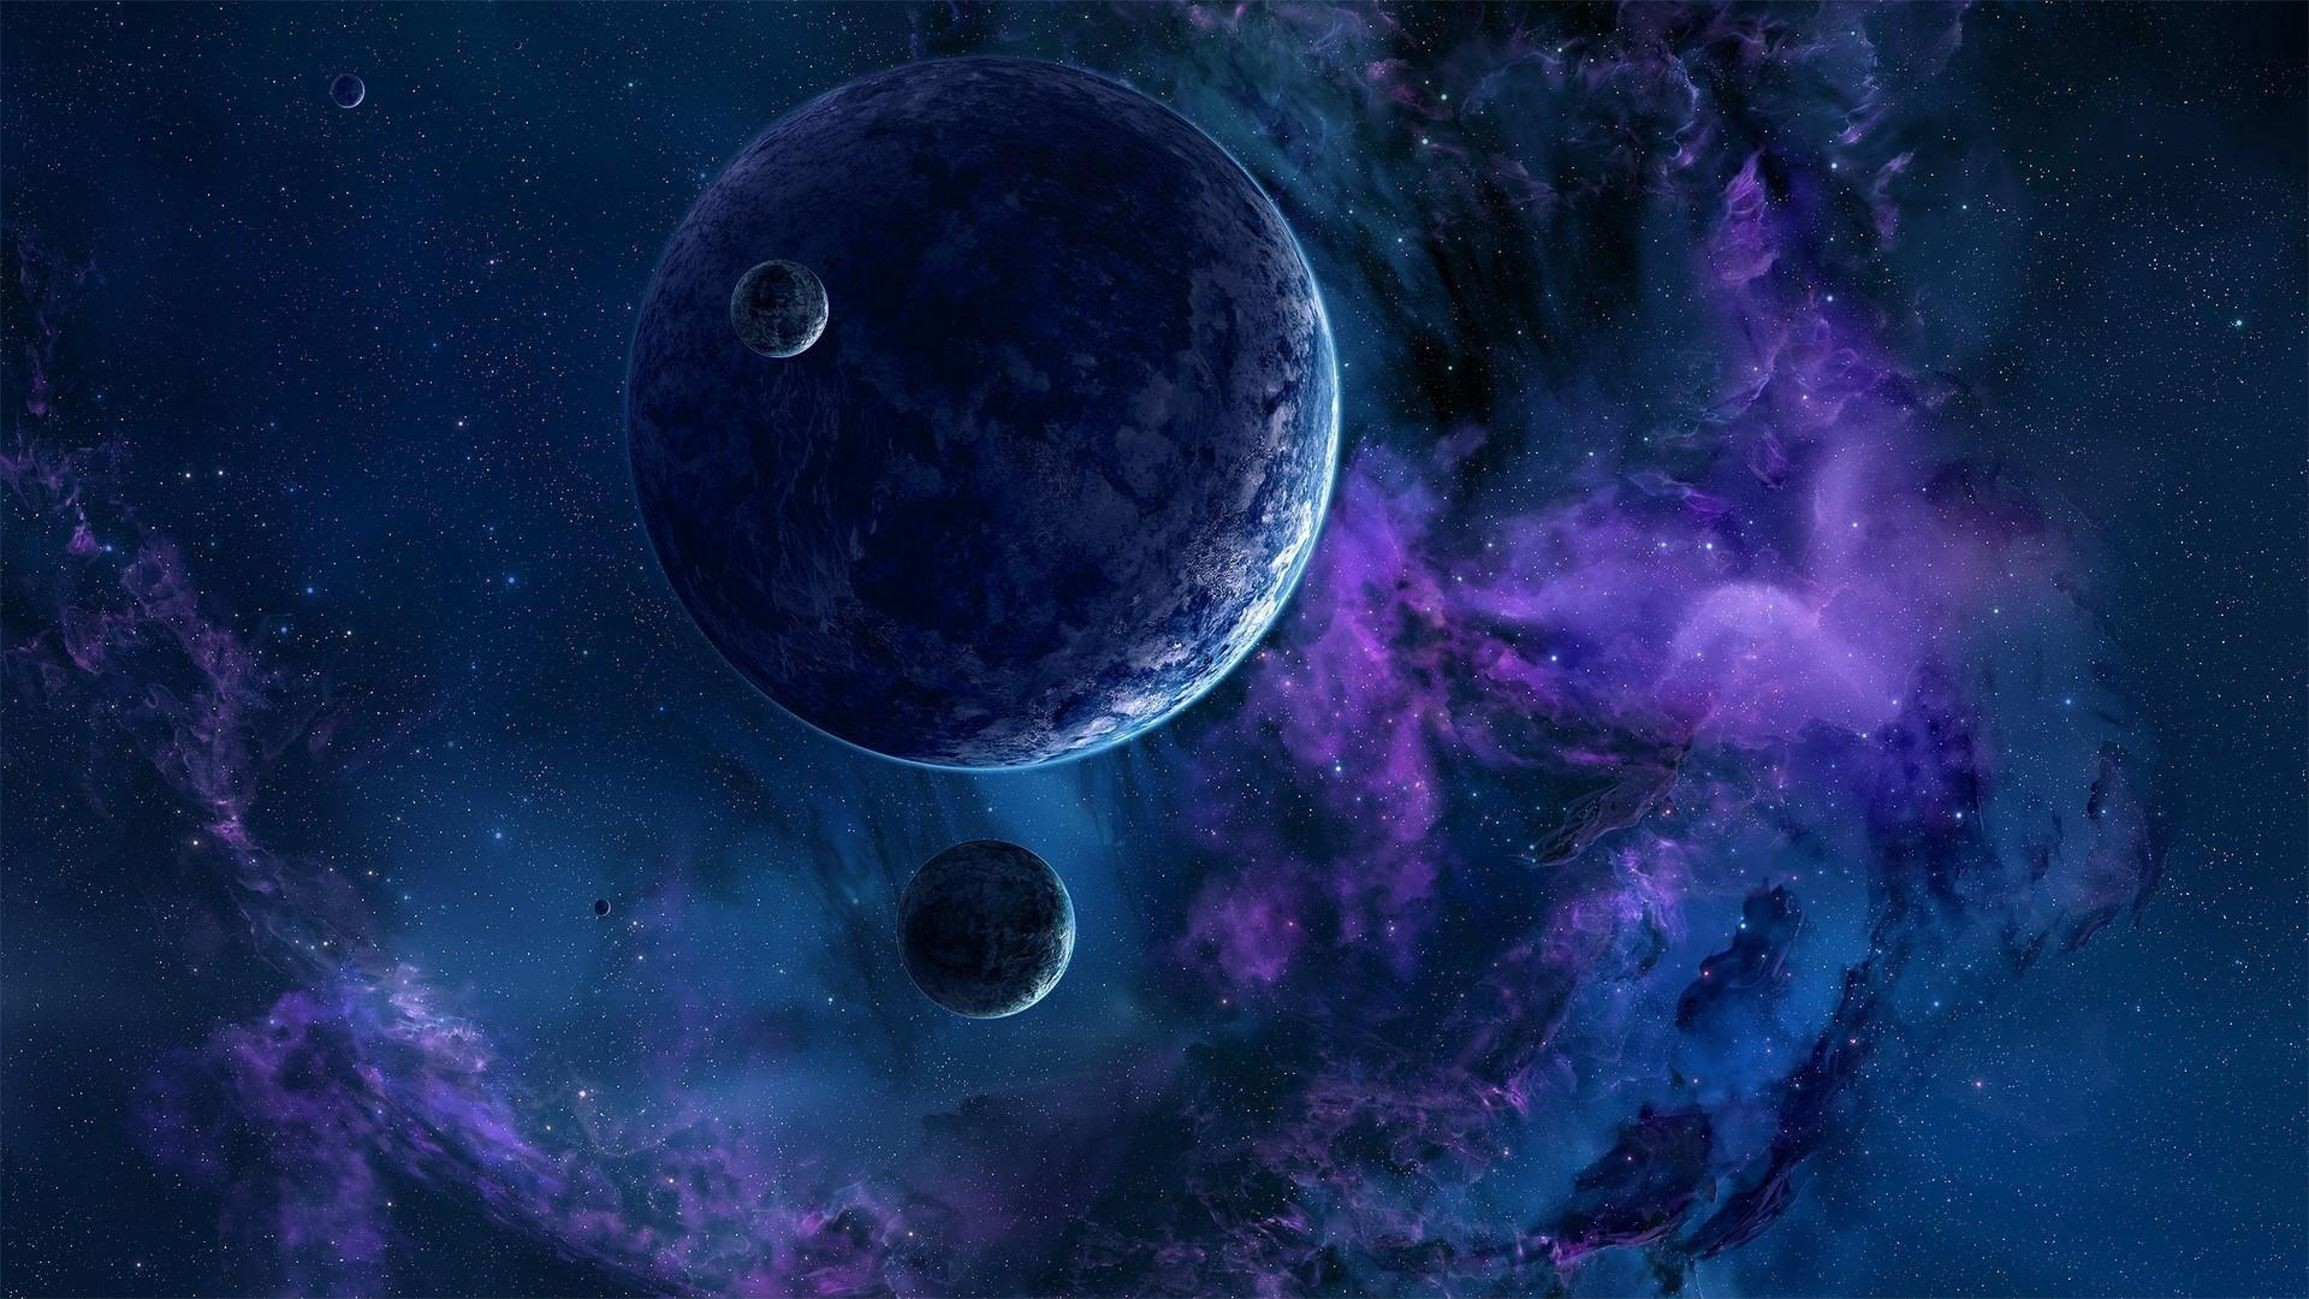 2309x1299 Universe Ultra HD Wallpaper http://wallpapers-and-backgrounds.net/